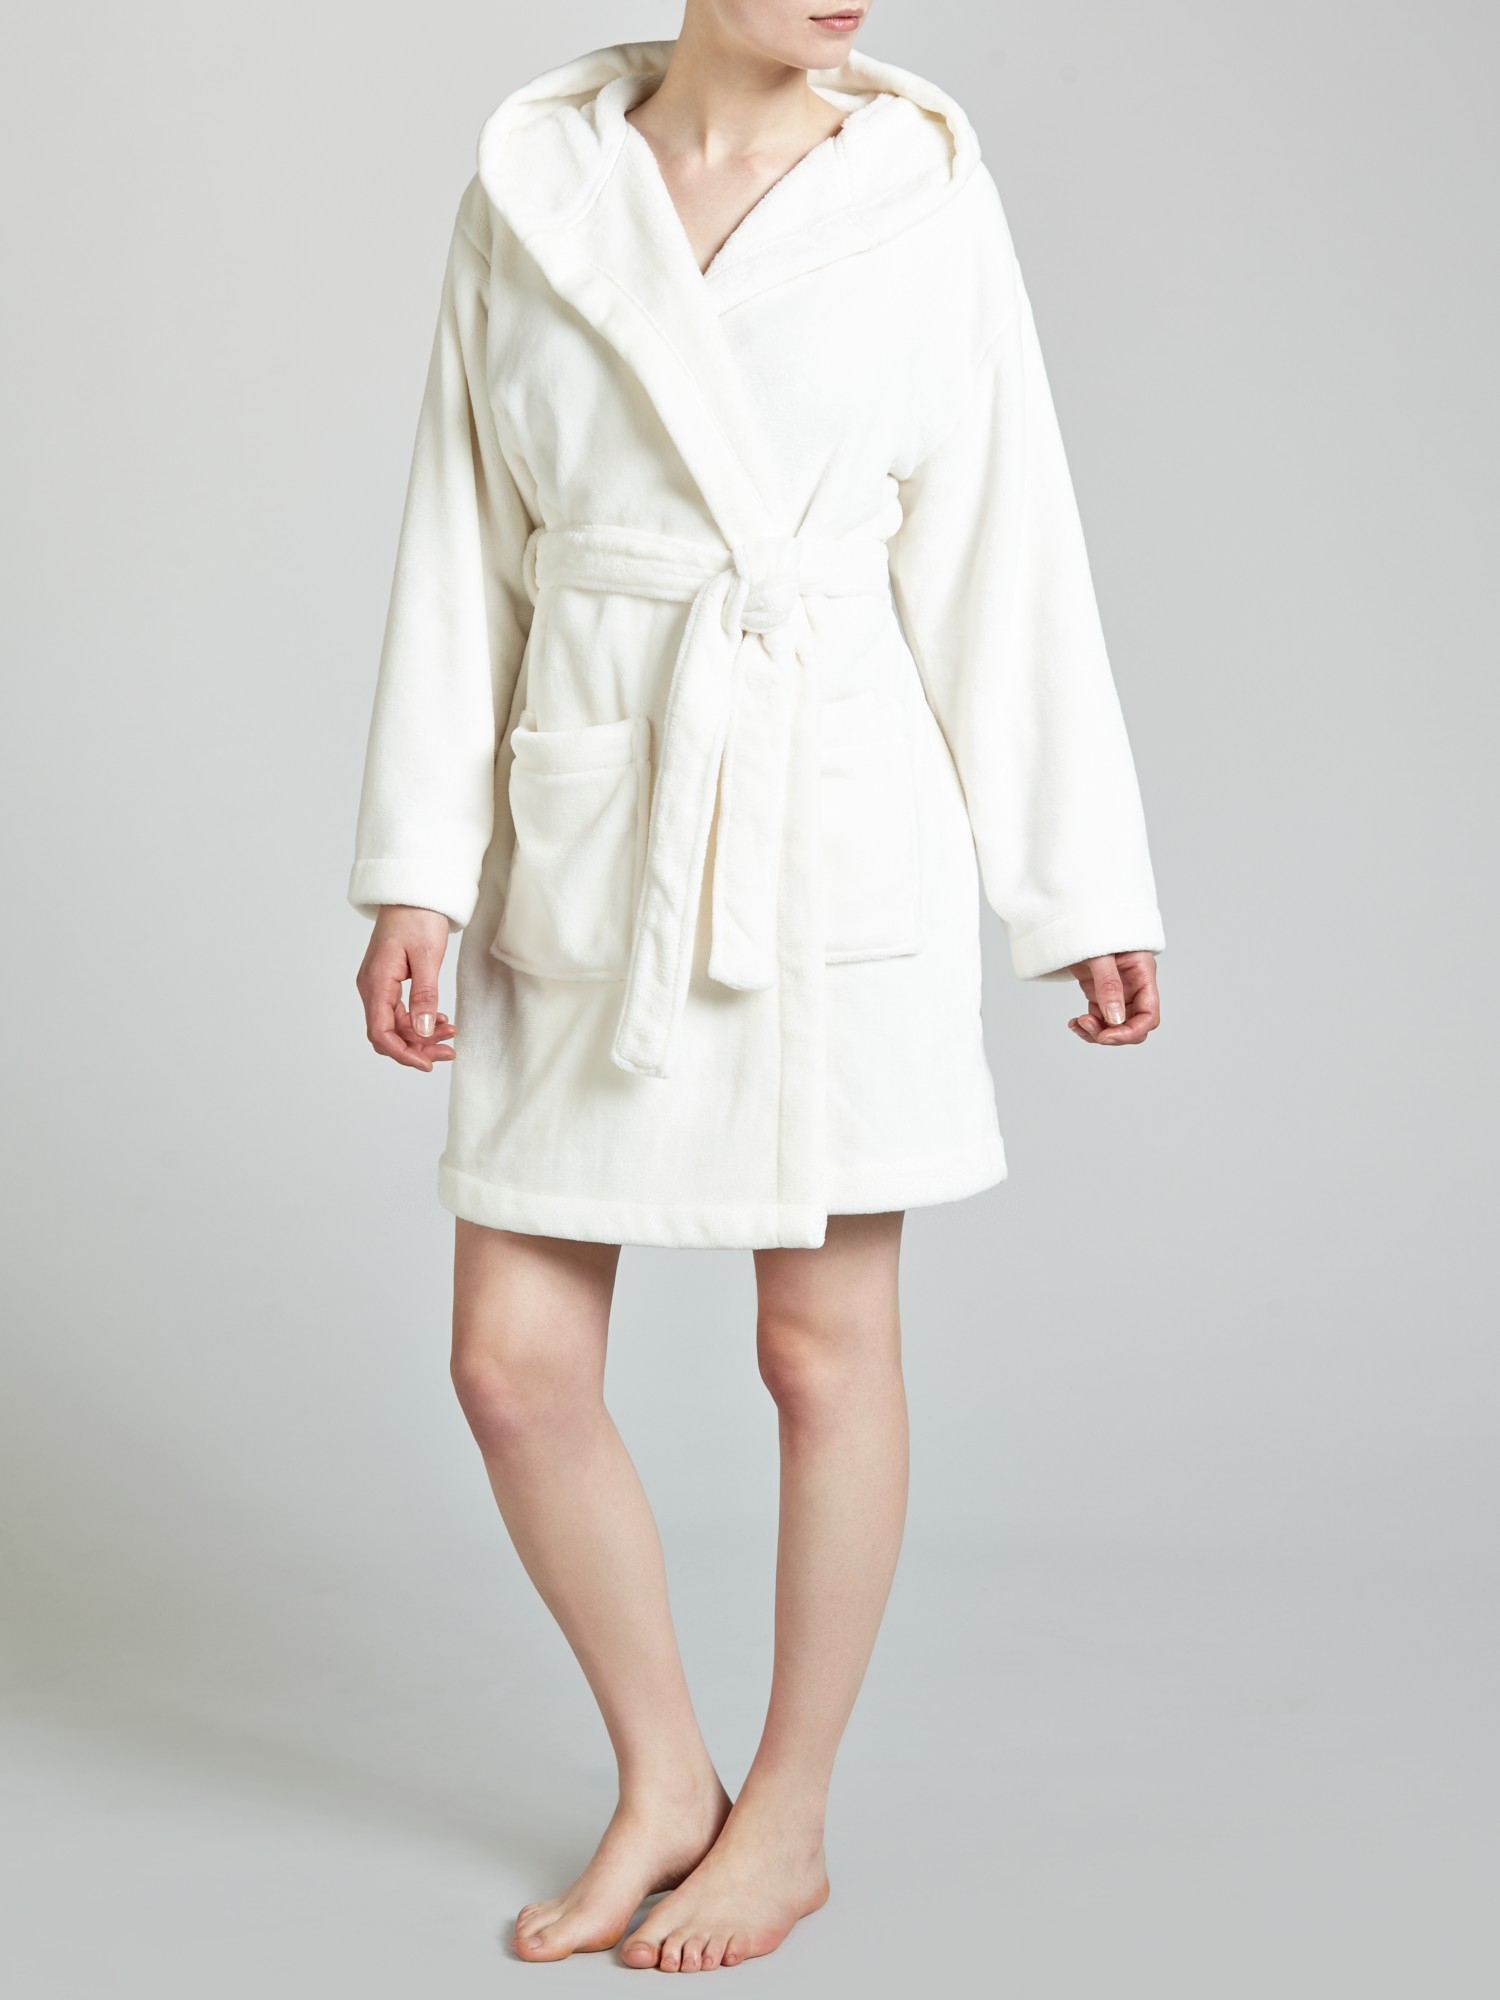 John Lewis Short Hooded Robe in White - Lyst